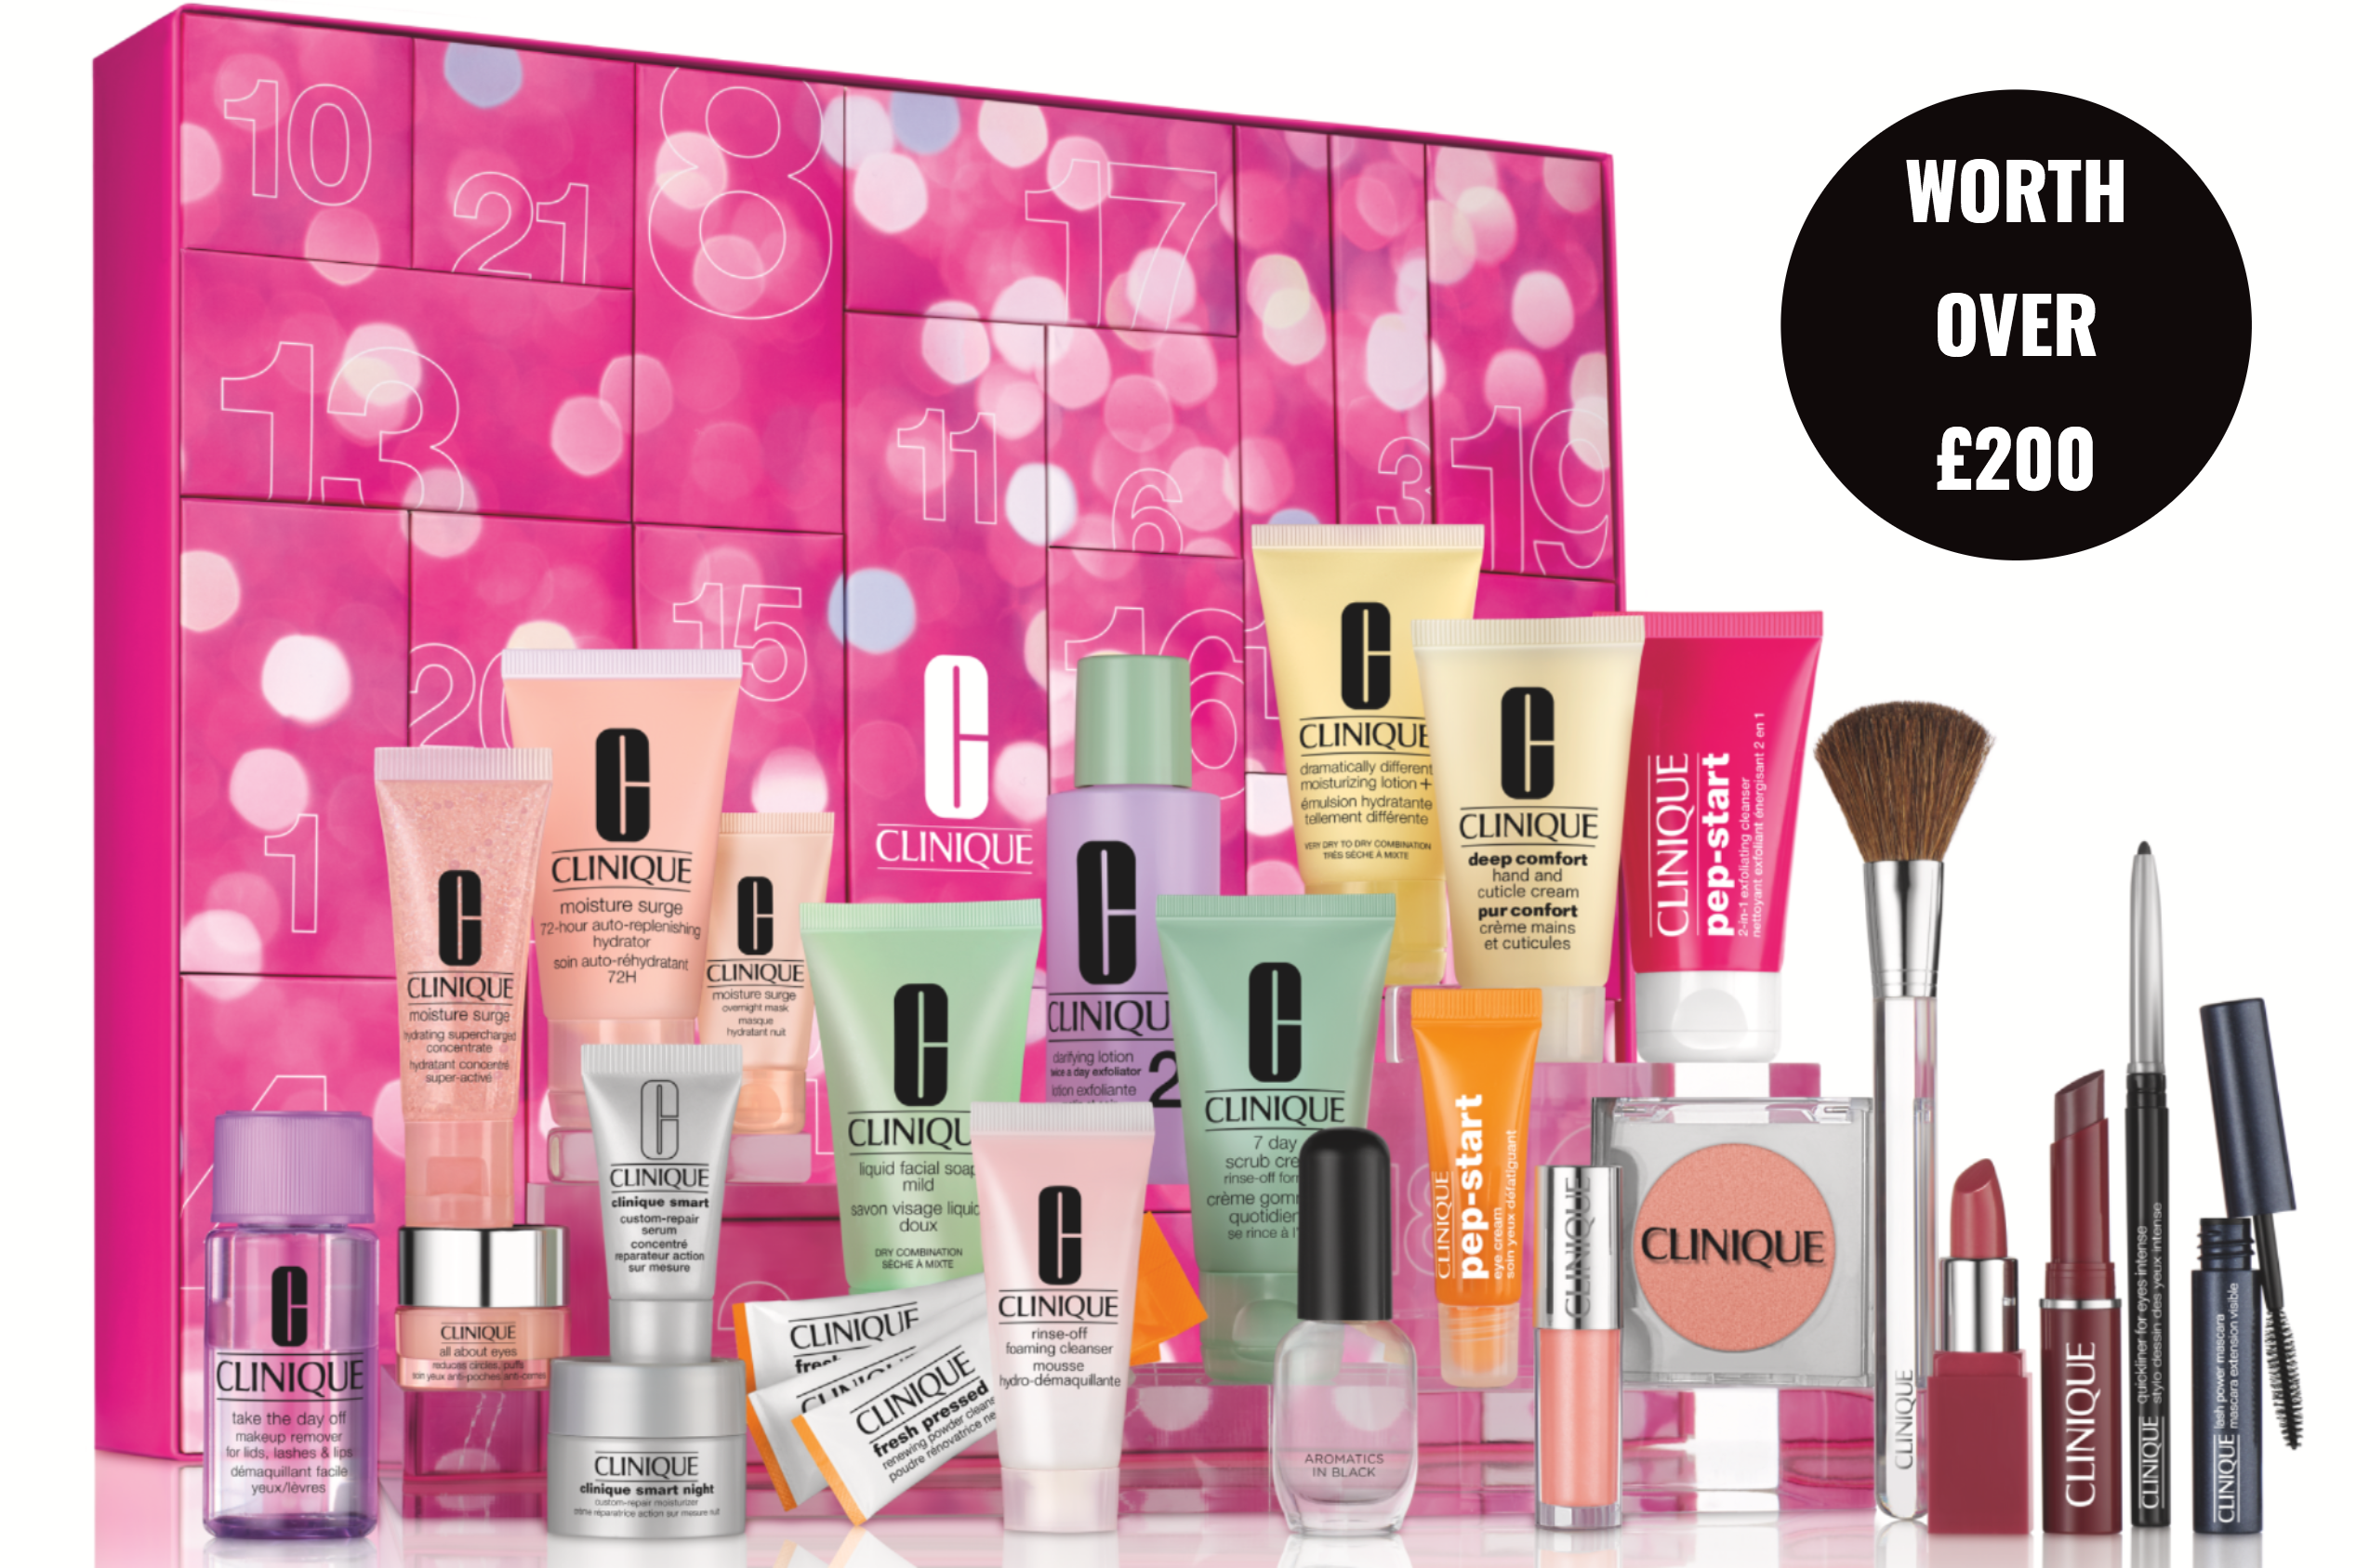 Clinique beauty advent calendar 2019 - The LDN Diaries